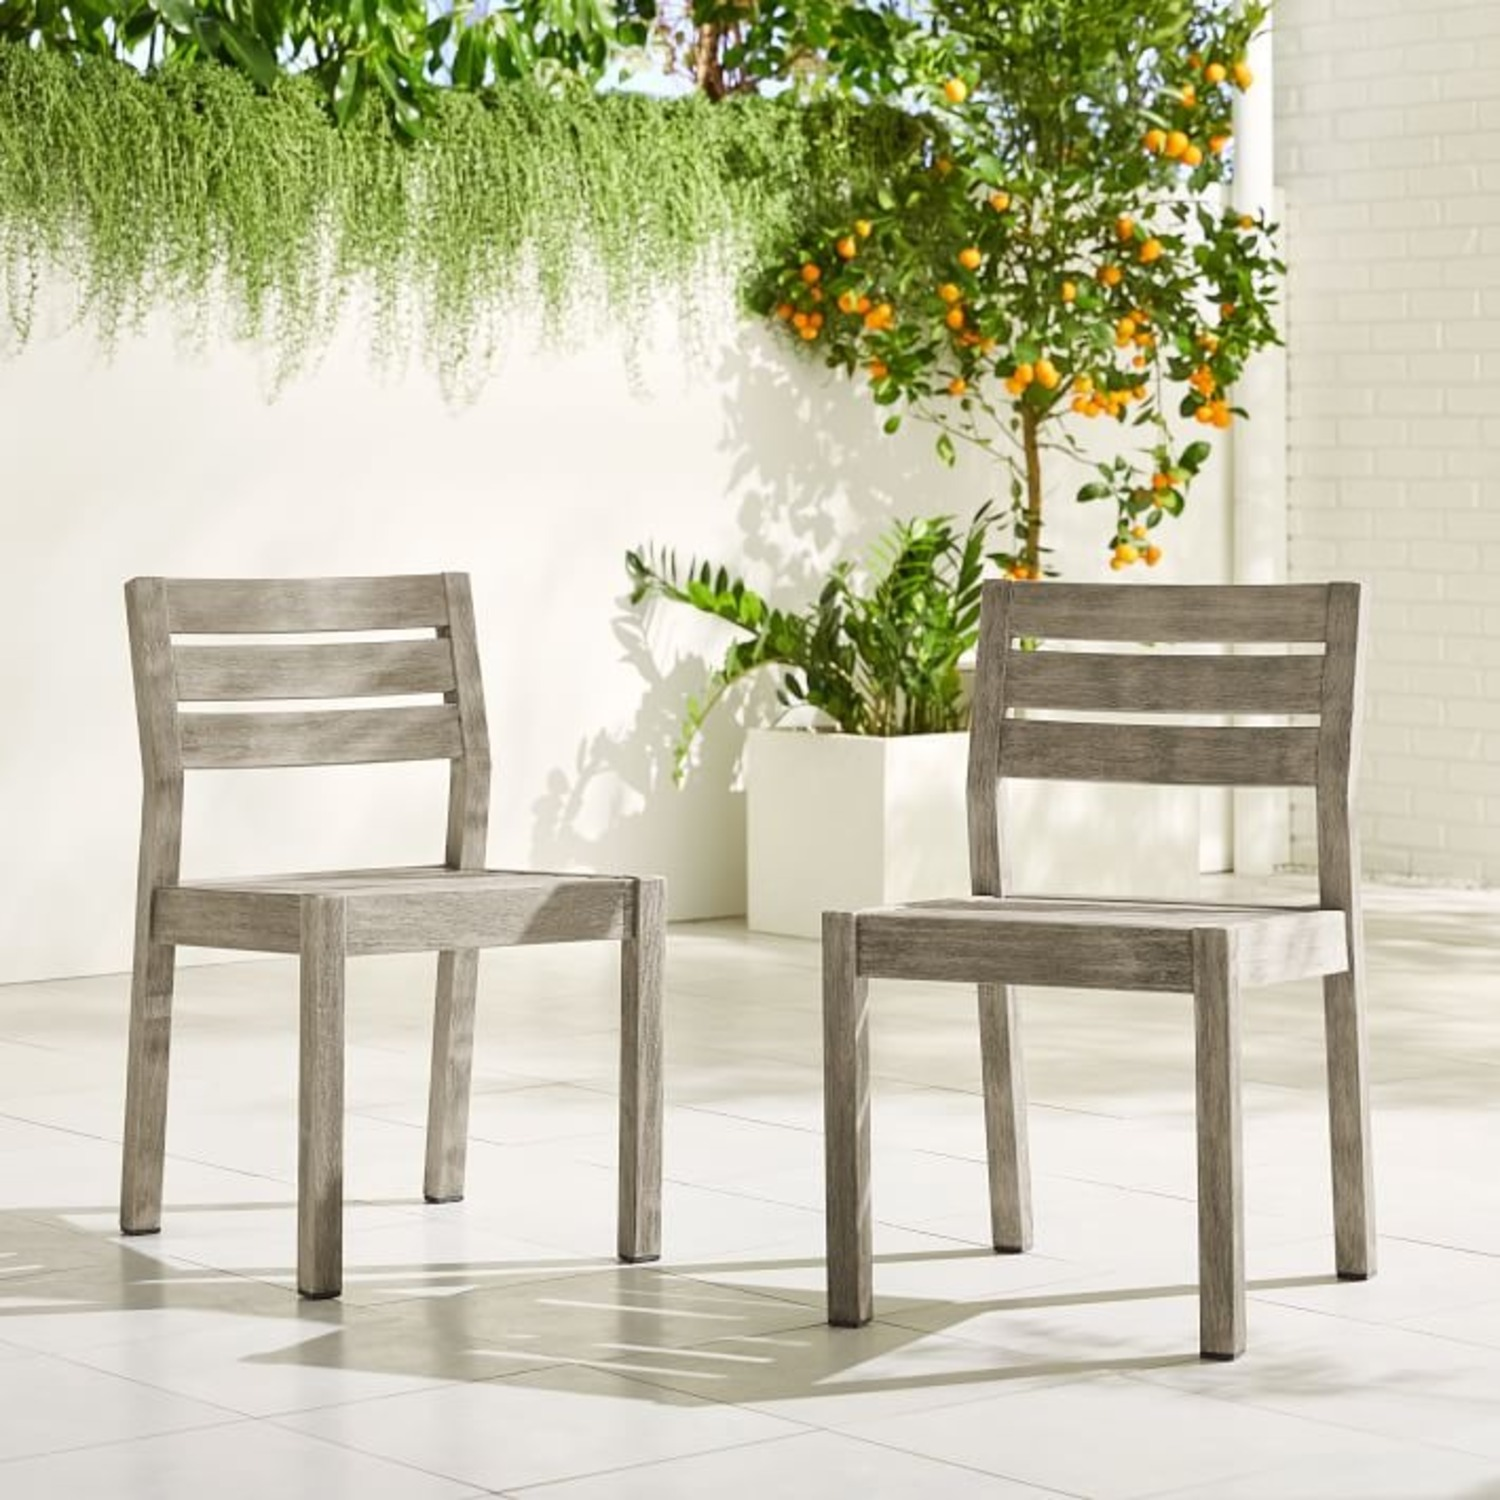 West Elm Portside Dining Chair - image-3